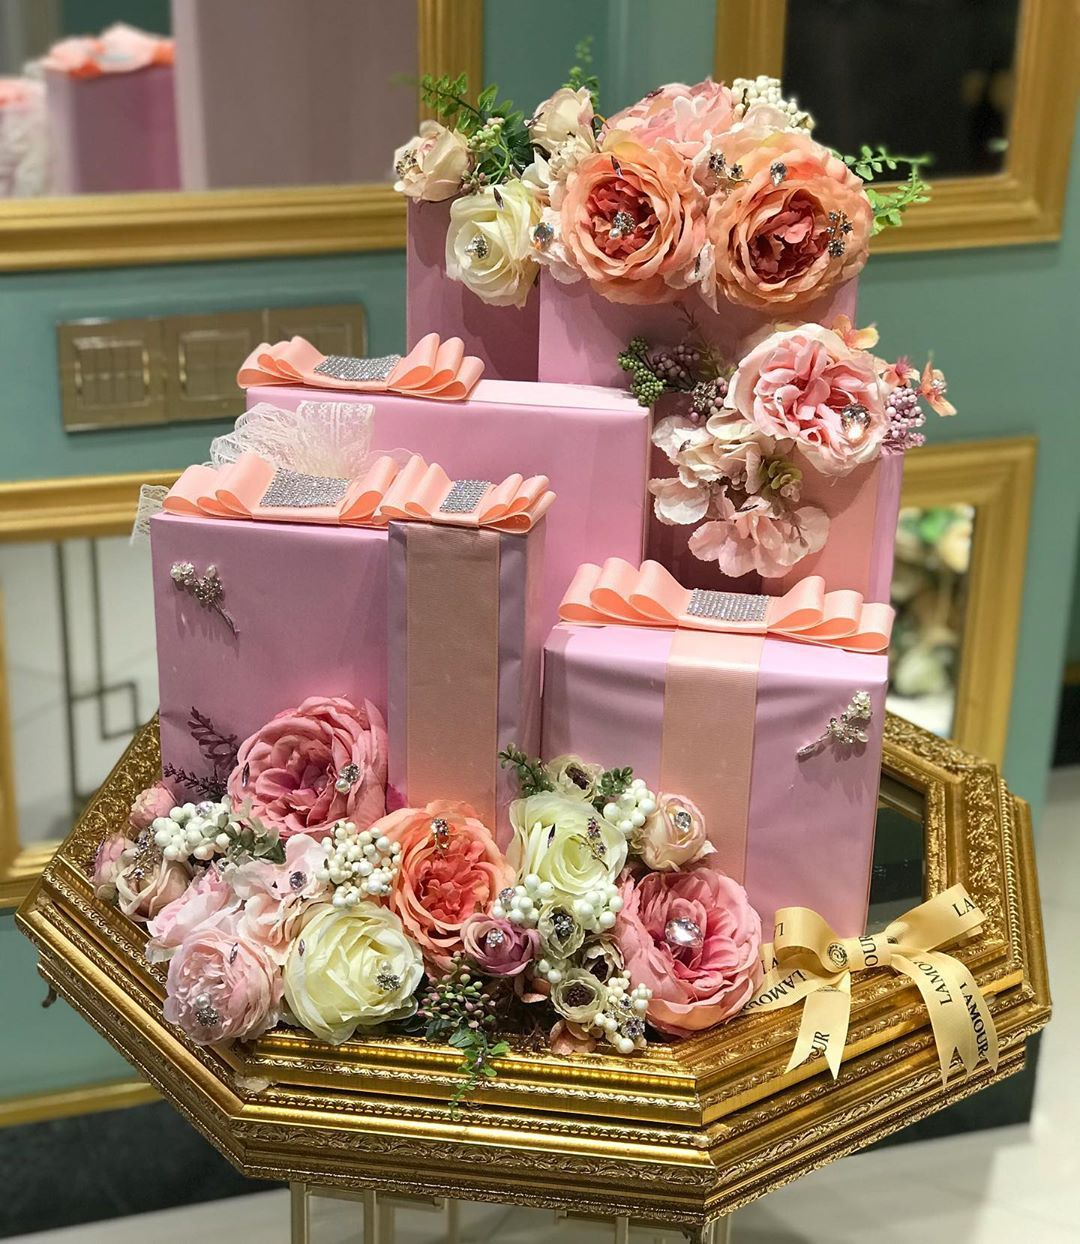 Pin By Nabila Zz On Wedding Gifts Bride And Groom Wedding Gift Hampers Creative Wedding Gifts Indian Wedding Gifts